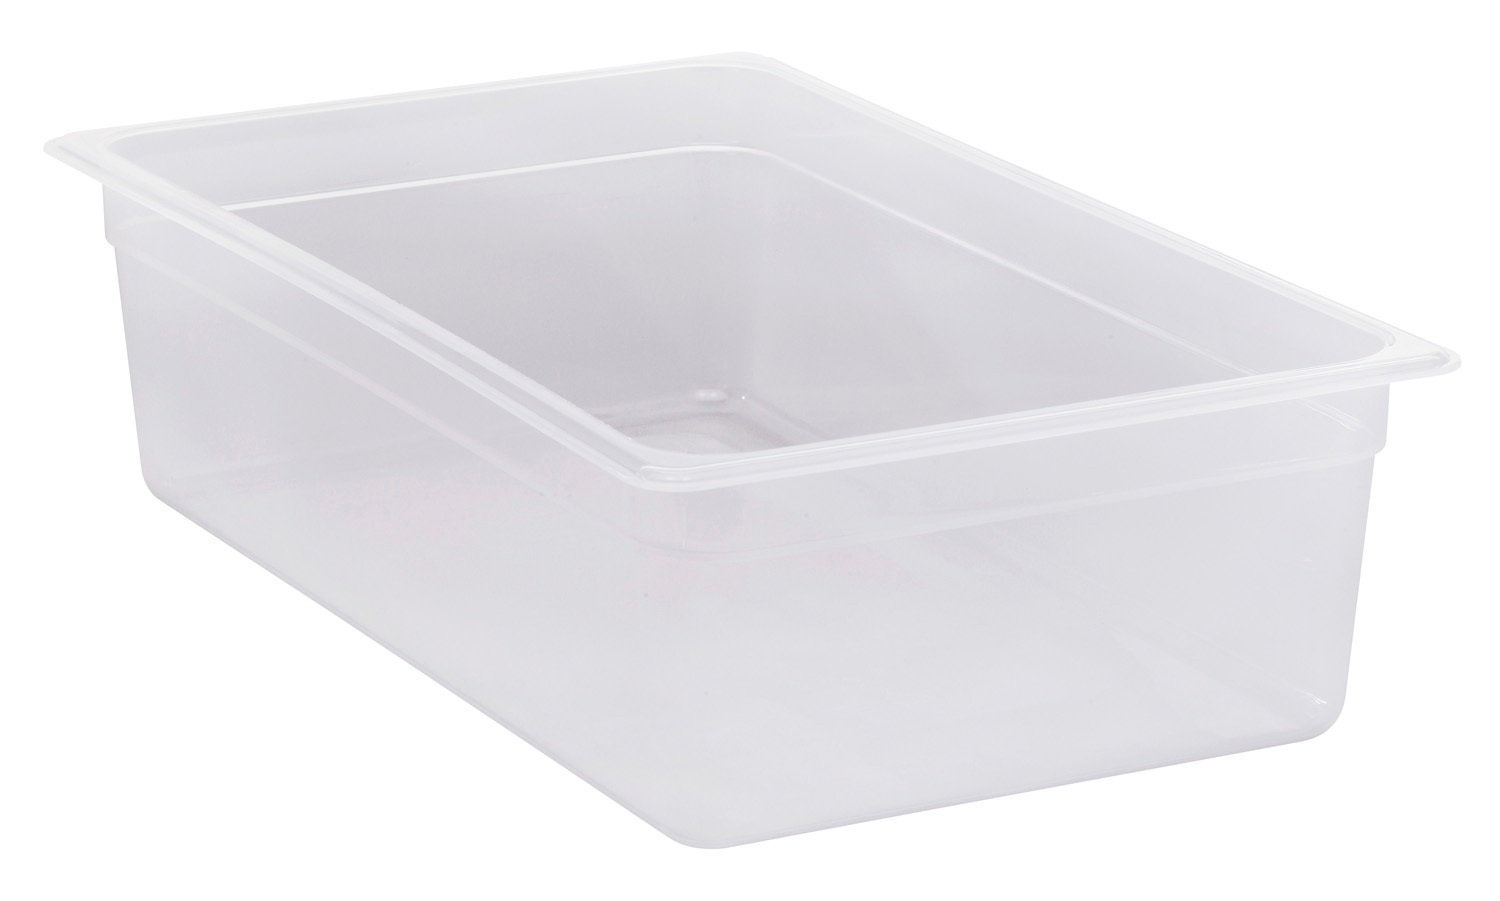 Cambro 16PP190 food/beverage storage container